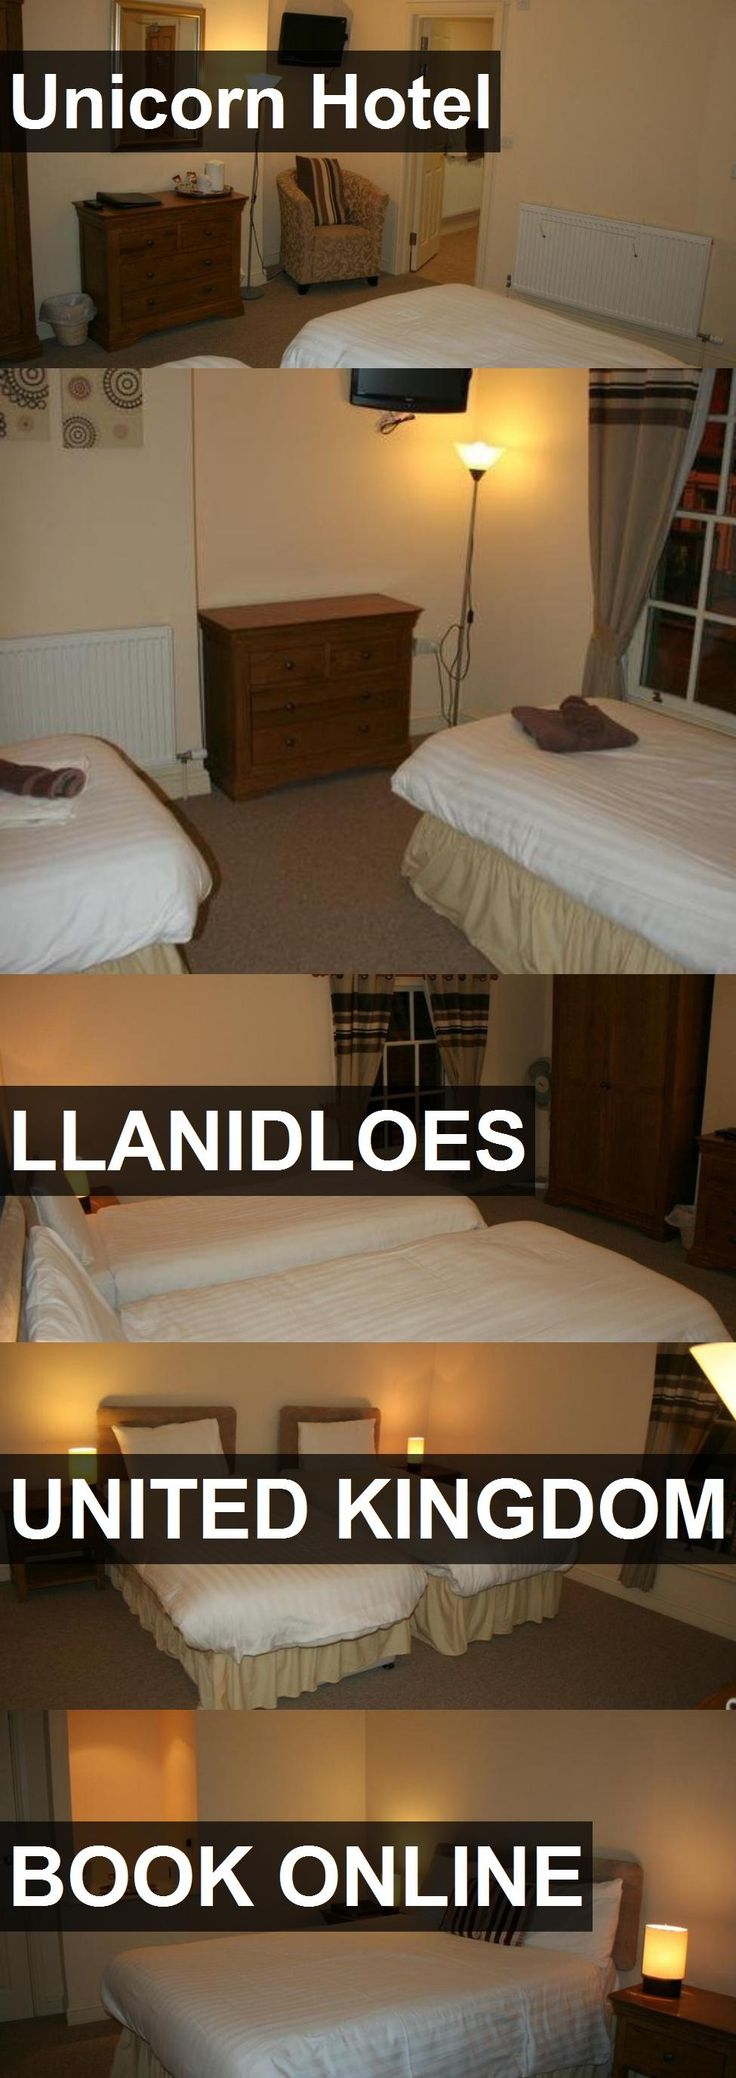 Unicorn Hotel in Llanidloes, United Kingdom. For more information, photos, reviews and best prices please follow the link. #UnitedKingdom #Llanidloes #travel #vacation #hotel